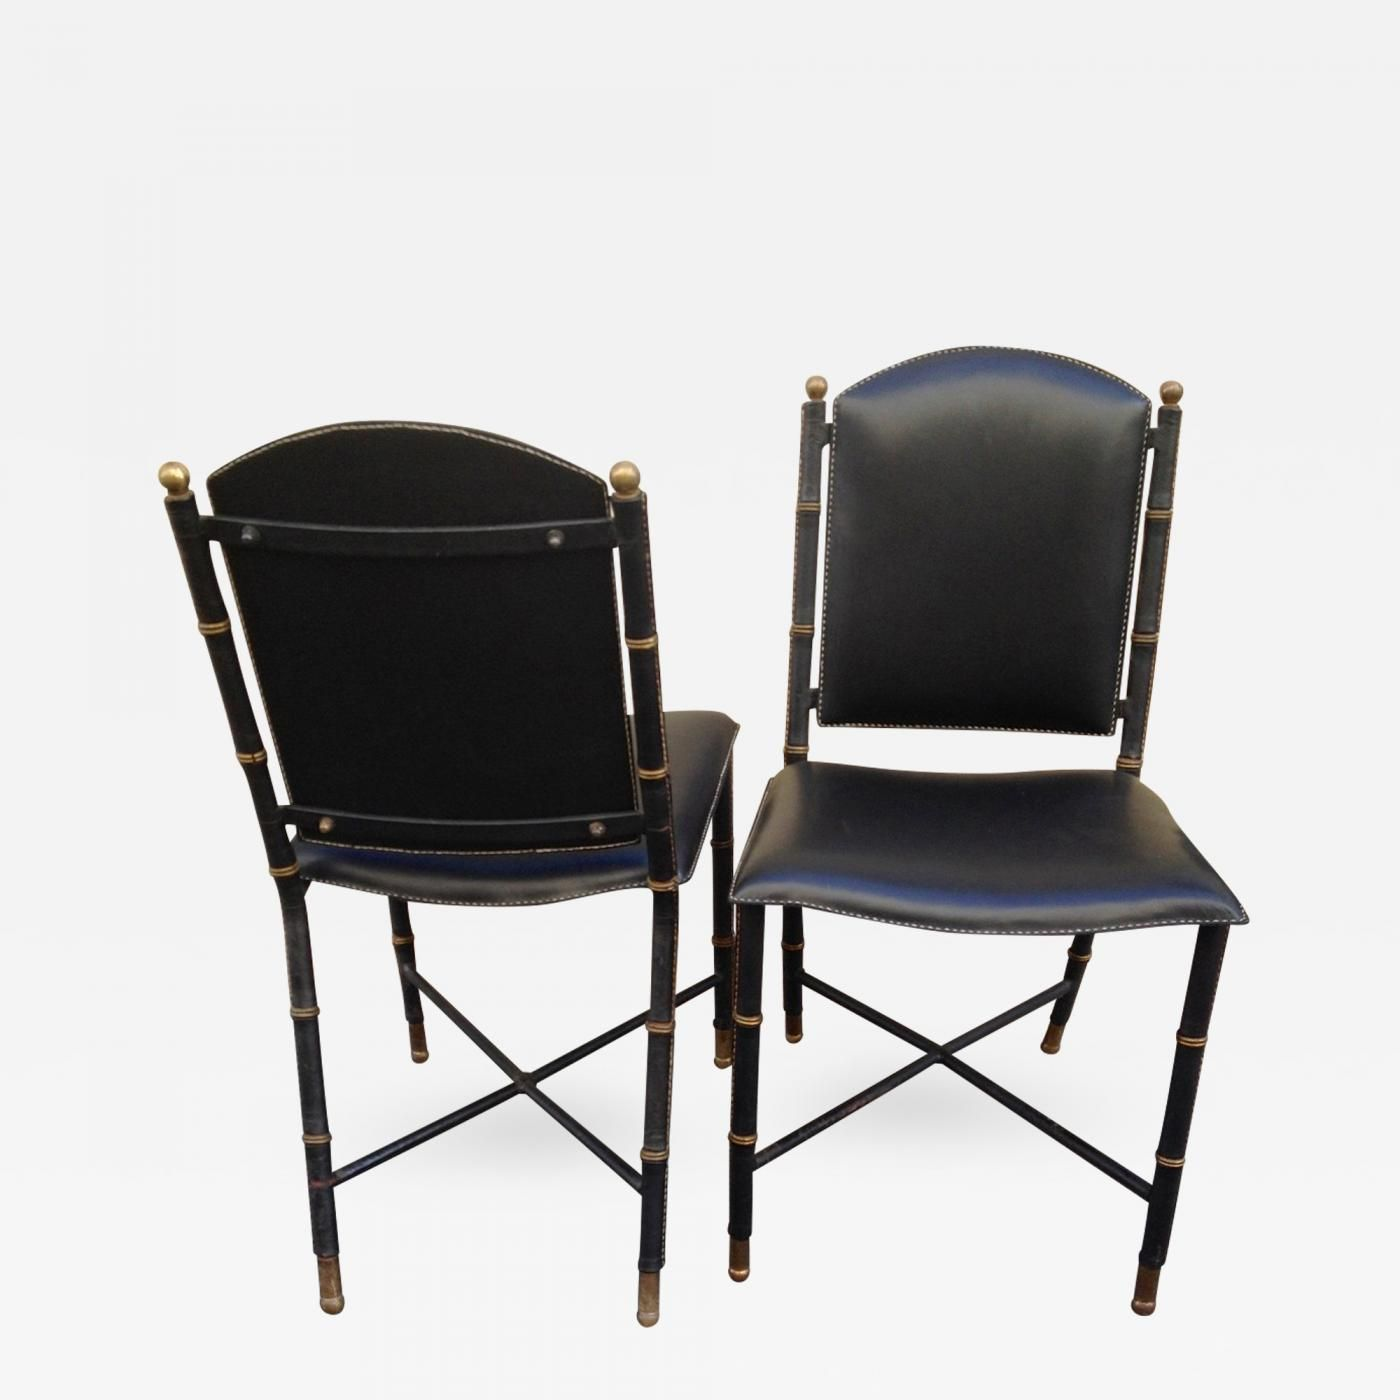 Jacques Adnet Jacques Adnet Rare Vintage Pair Of Hand Stitched  # Muebles Gustavo Martin